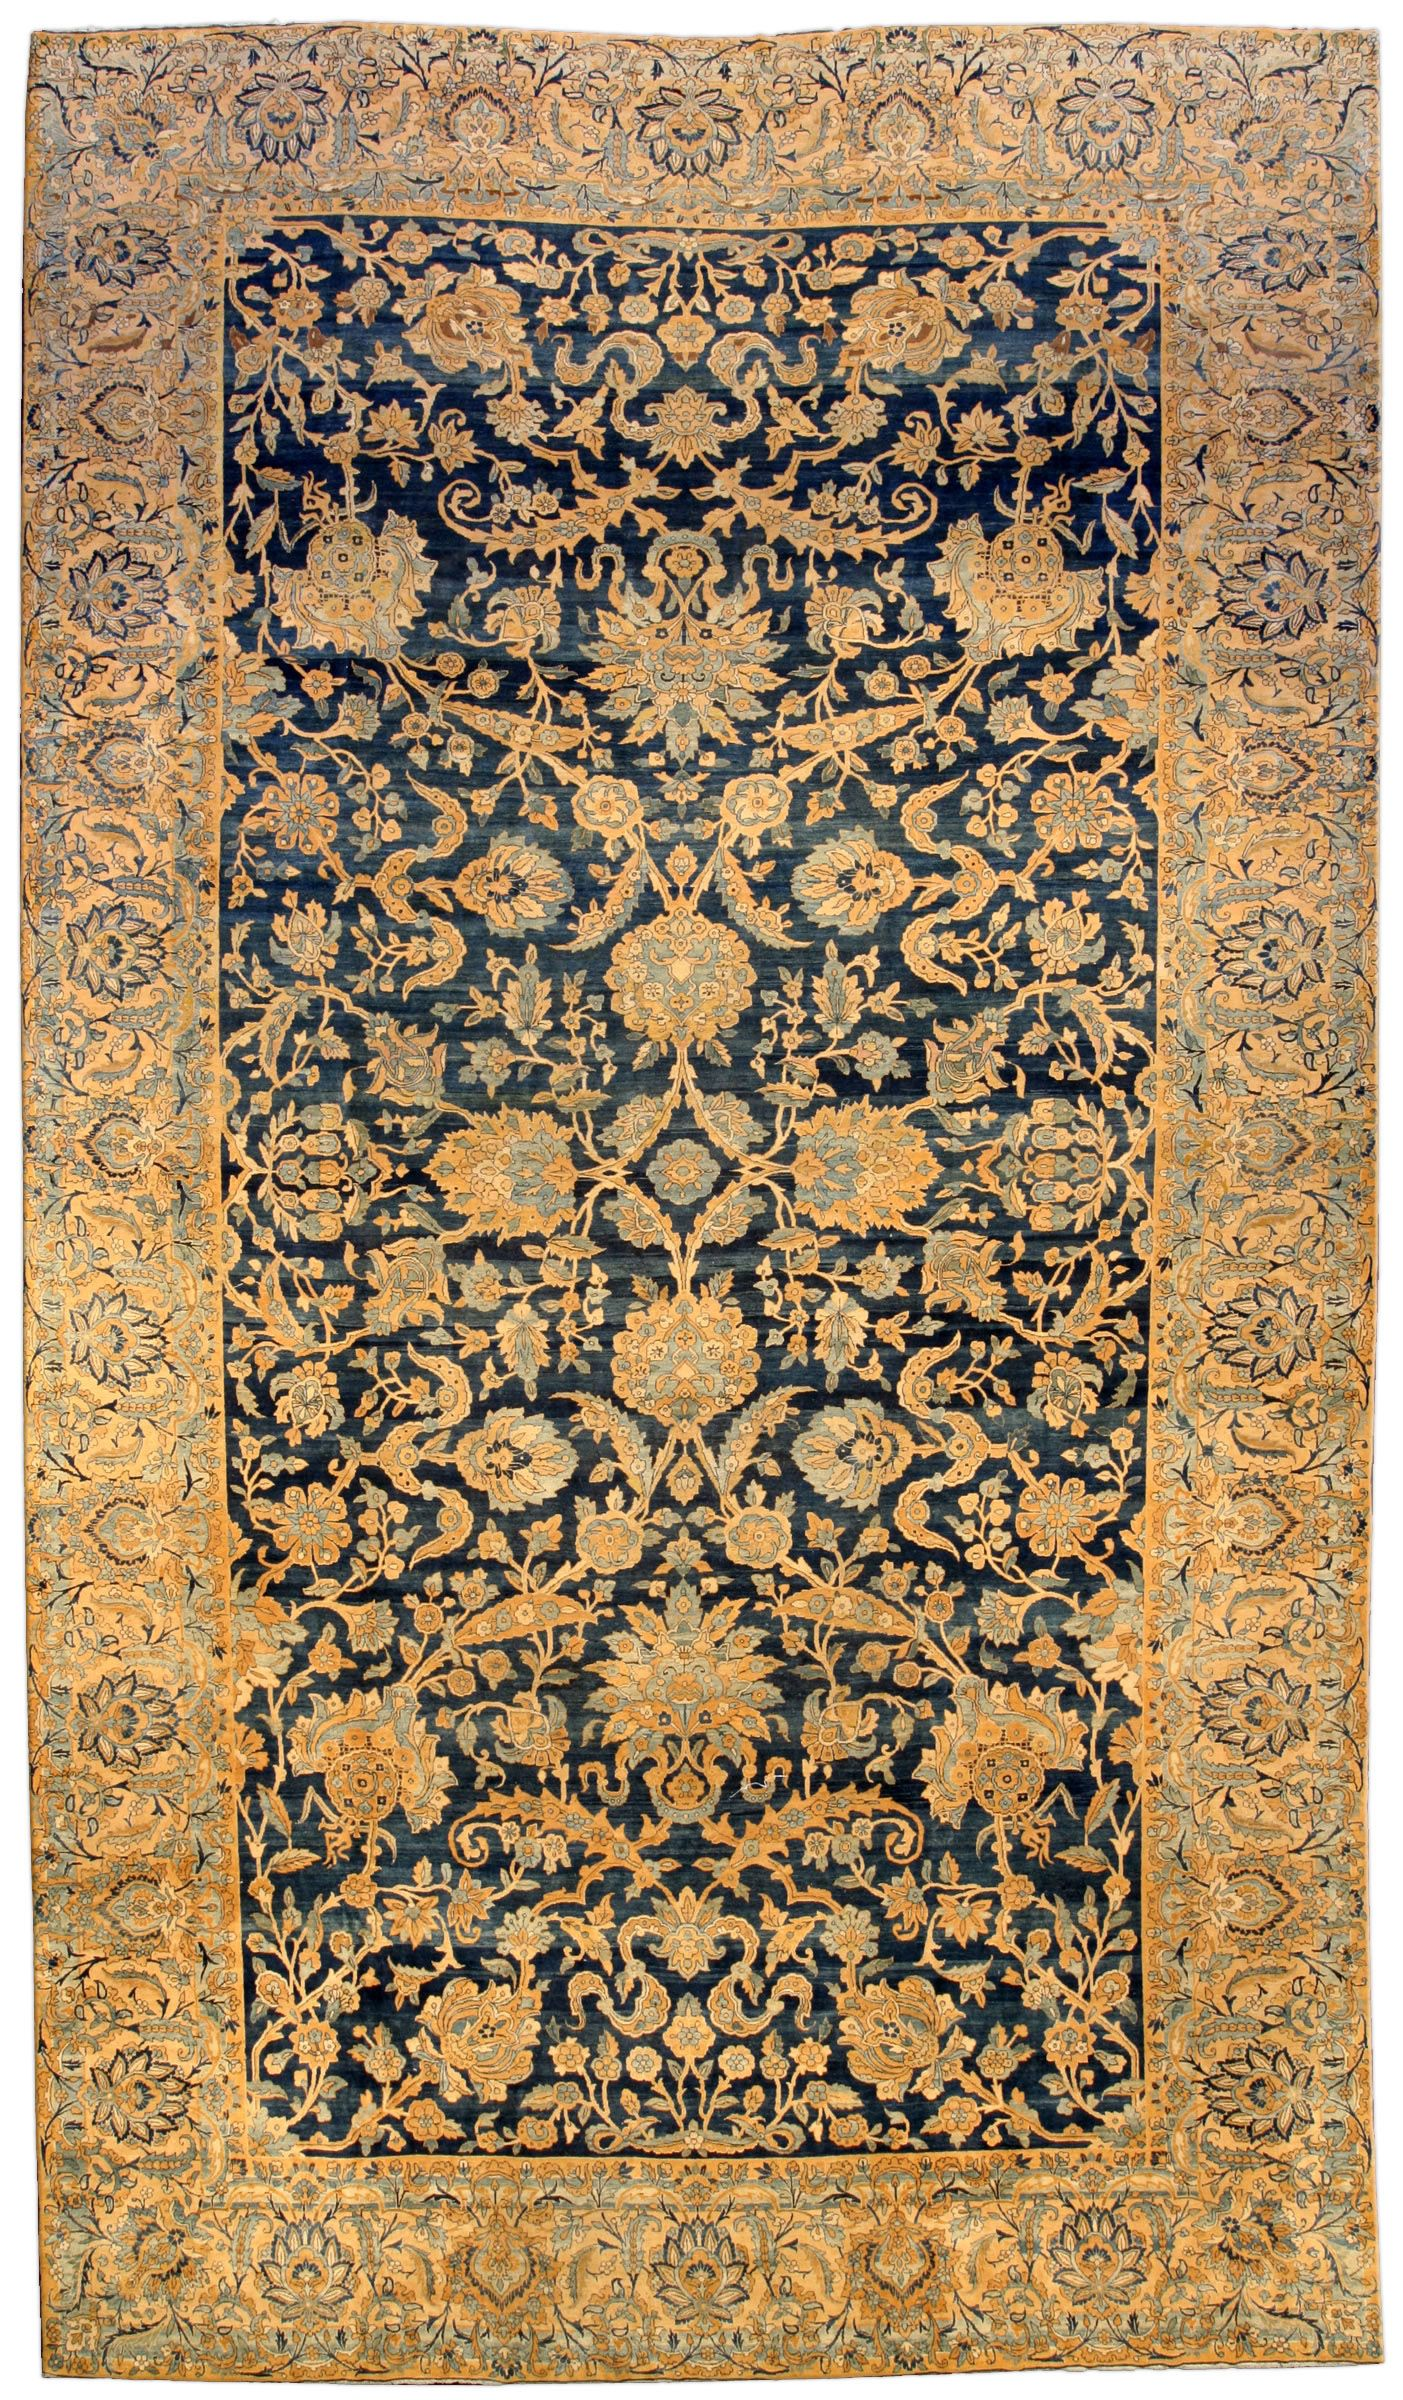 An Early 20th Century Persian Kirman Kerman Antique Rug The Striated Midnight Blue Field With A Palmette And Leafy Vin Persian Rug Designs Rugs Antique Rugs